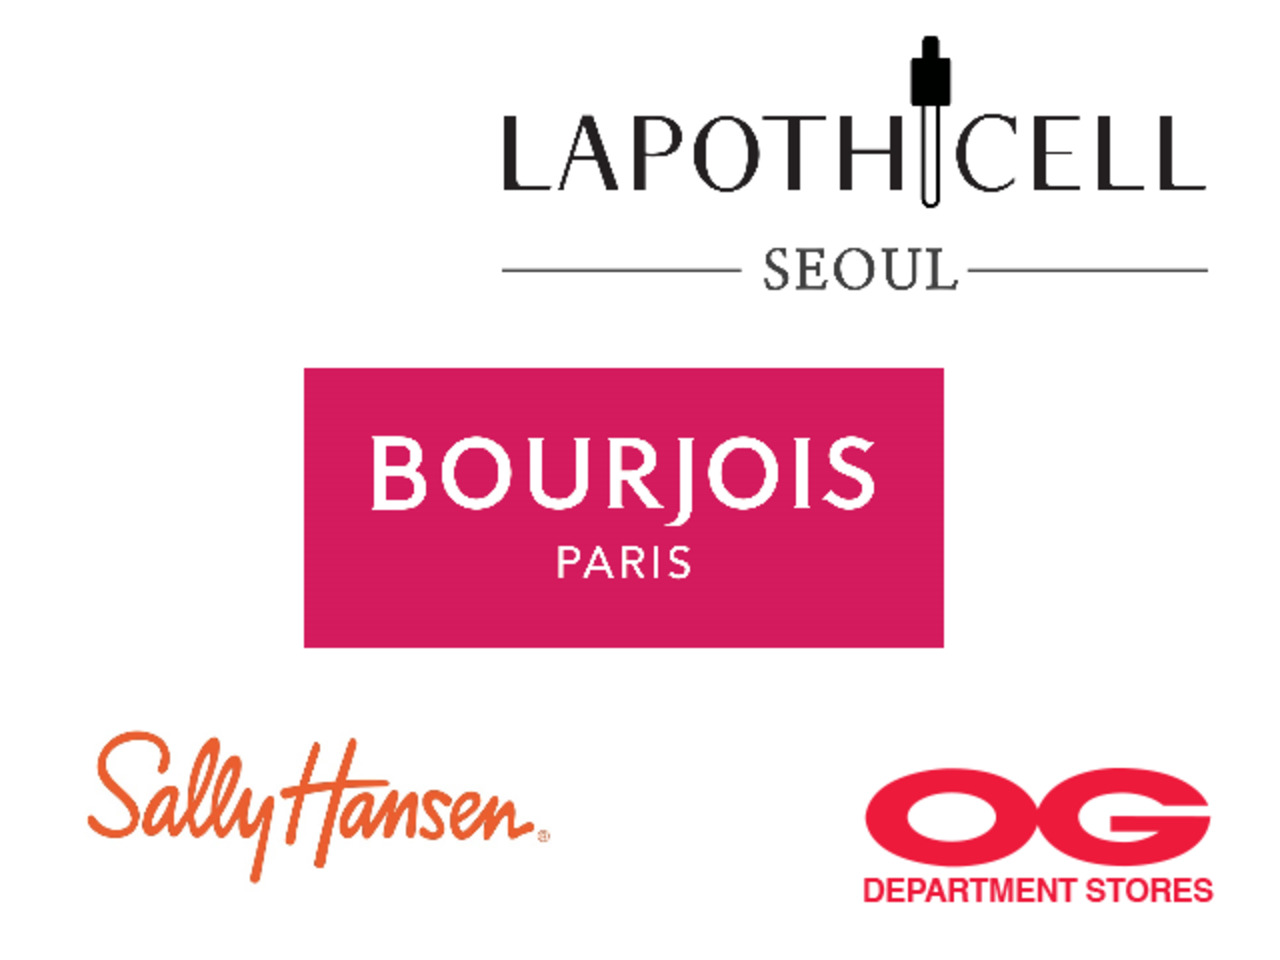 LAPOTHICELL / BOURJOIS / SALLY HANSEN All Regular-Priced Cosmetics @ 30% off